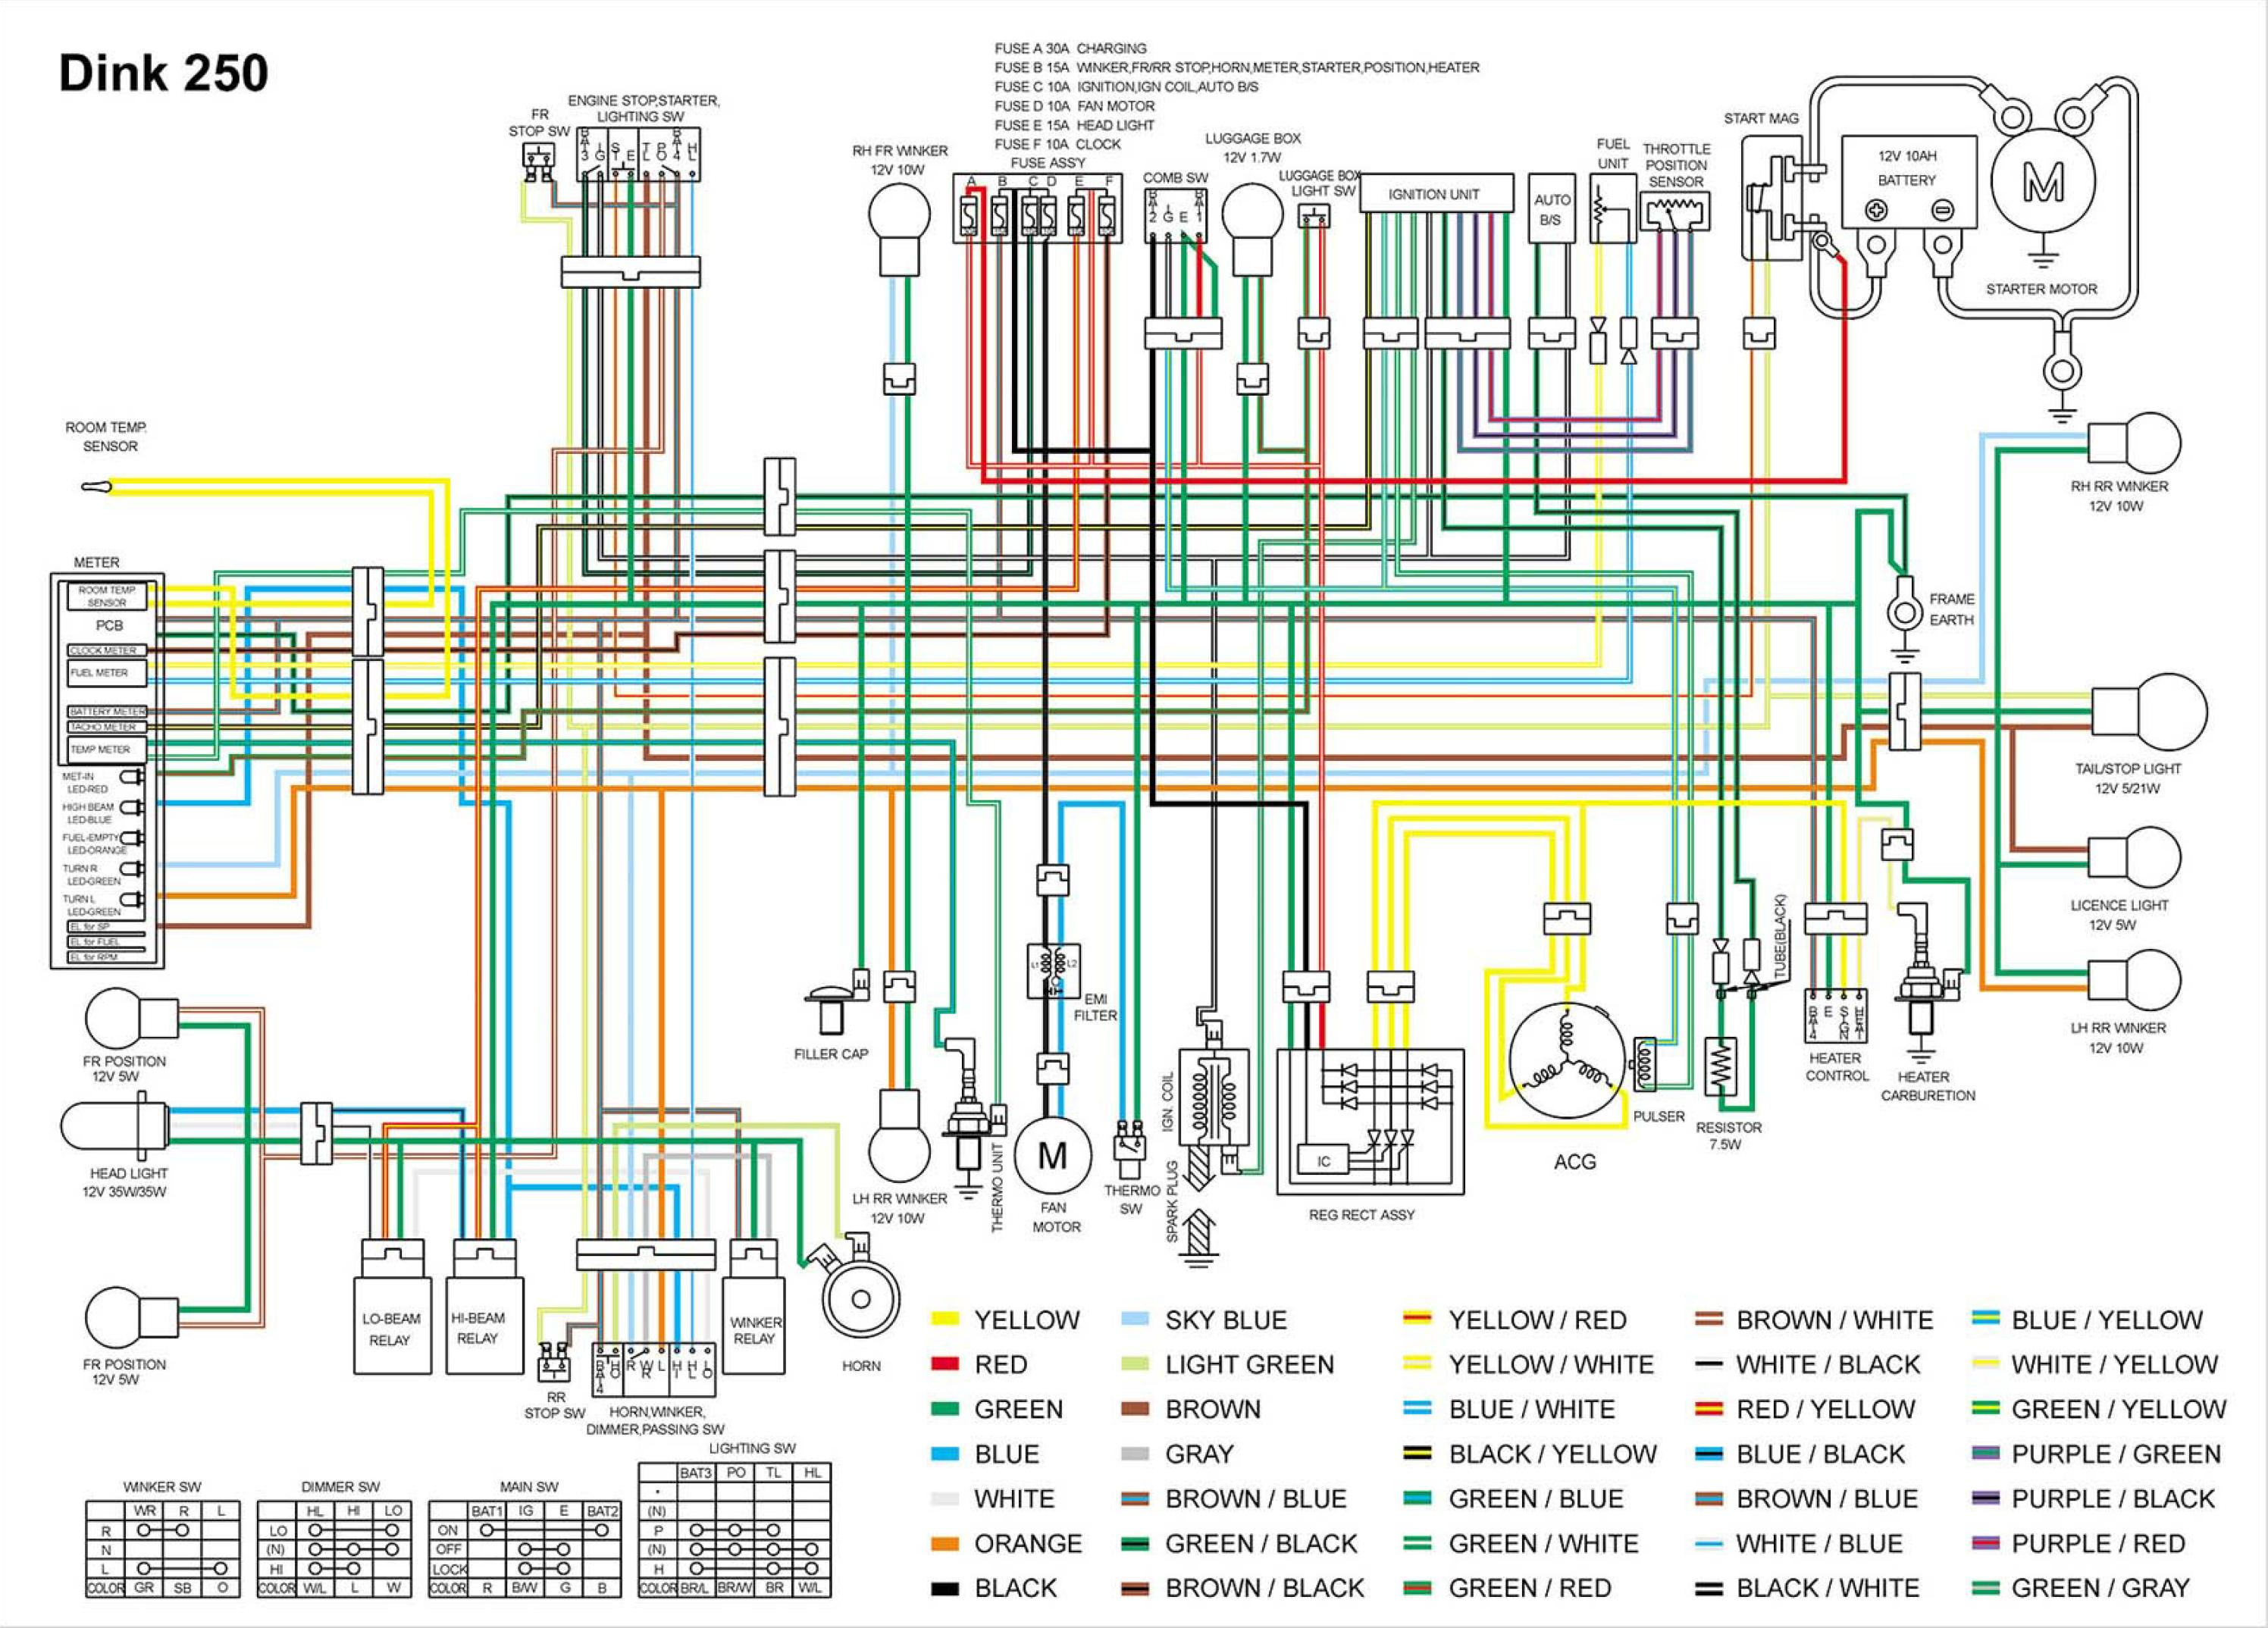 Kymco Scooter Wiring Diagram - basic electrical wiring theory on ice bear trikes problems, gy6 carburetor diagram, ice bear motor scooters, ice bear scooter exhaust, ice bear scooter wheels, ice bear scooter problems, ice bear scooter dealers, ice bear scooter parts, ice bear scooter accessories, ice bear scooter manual,